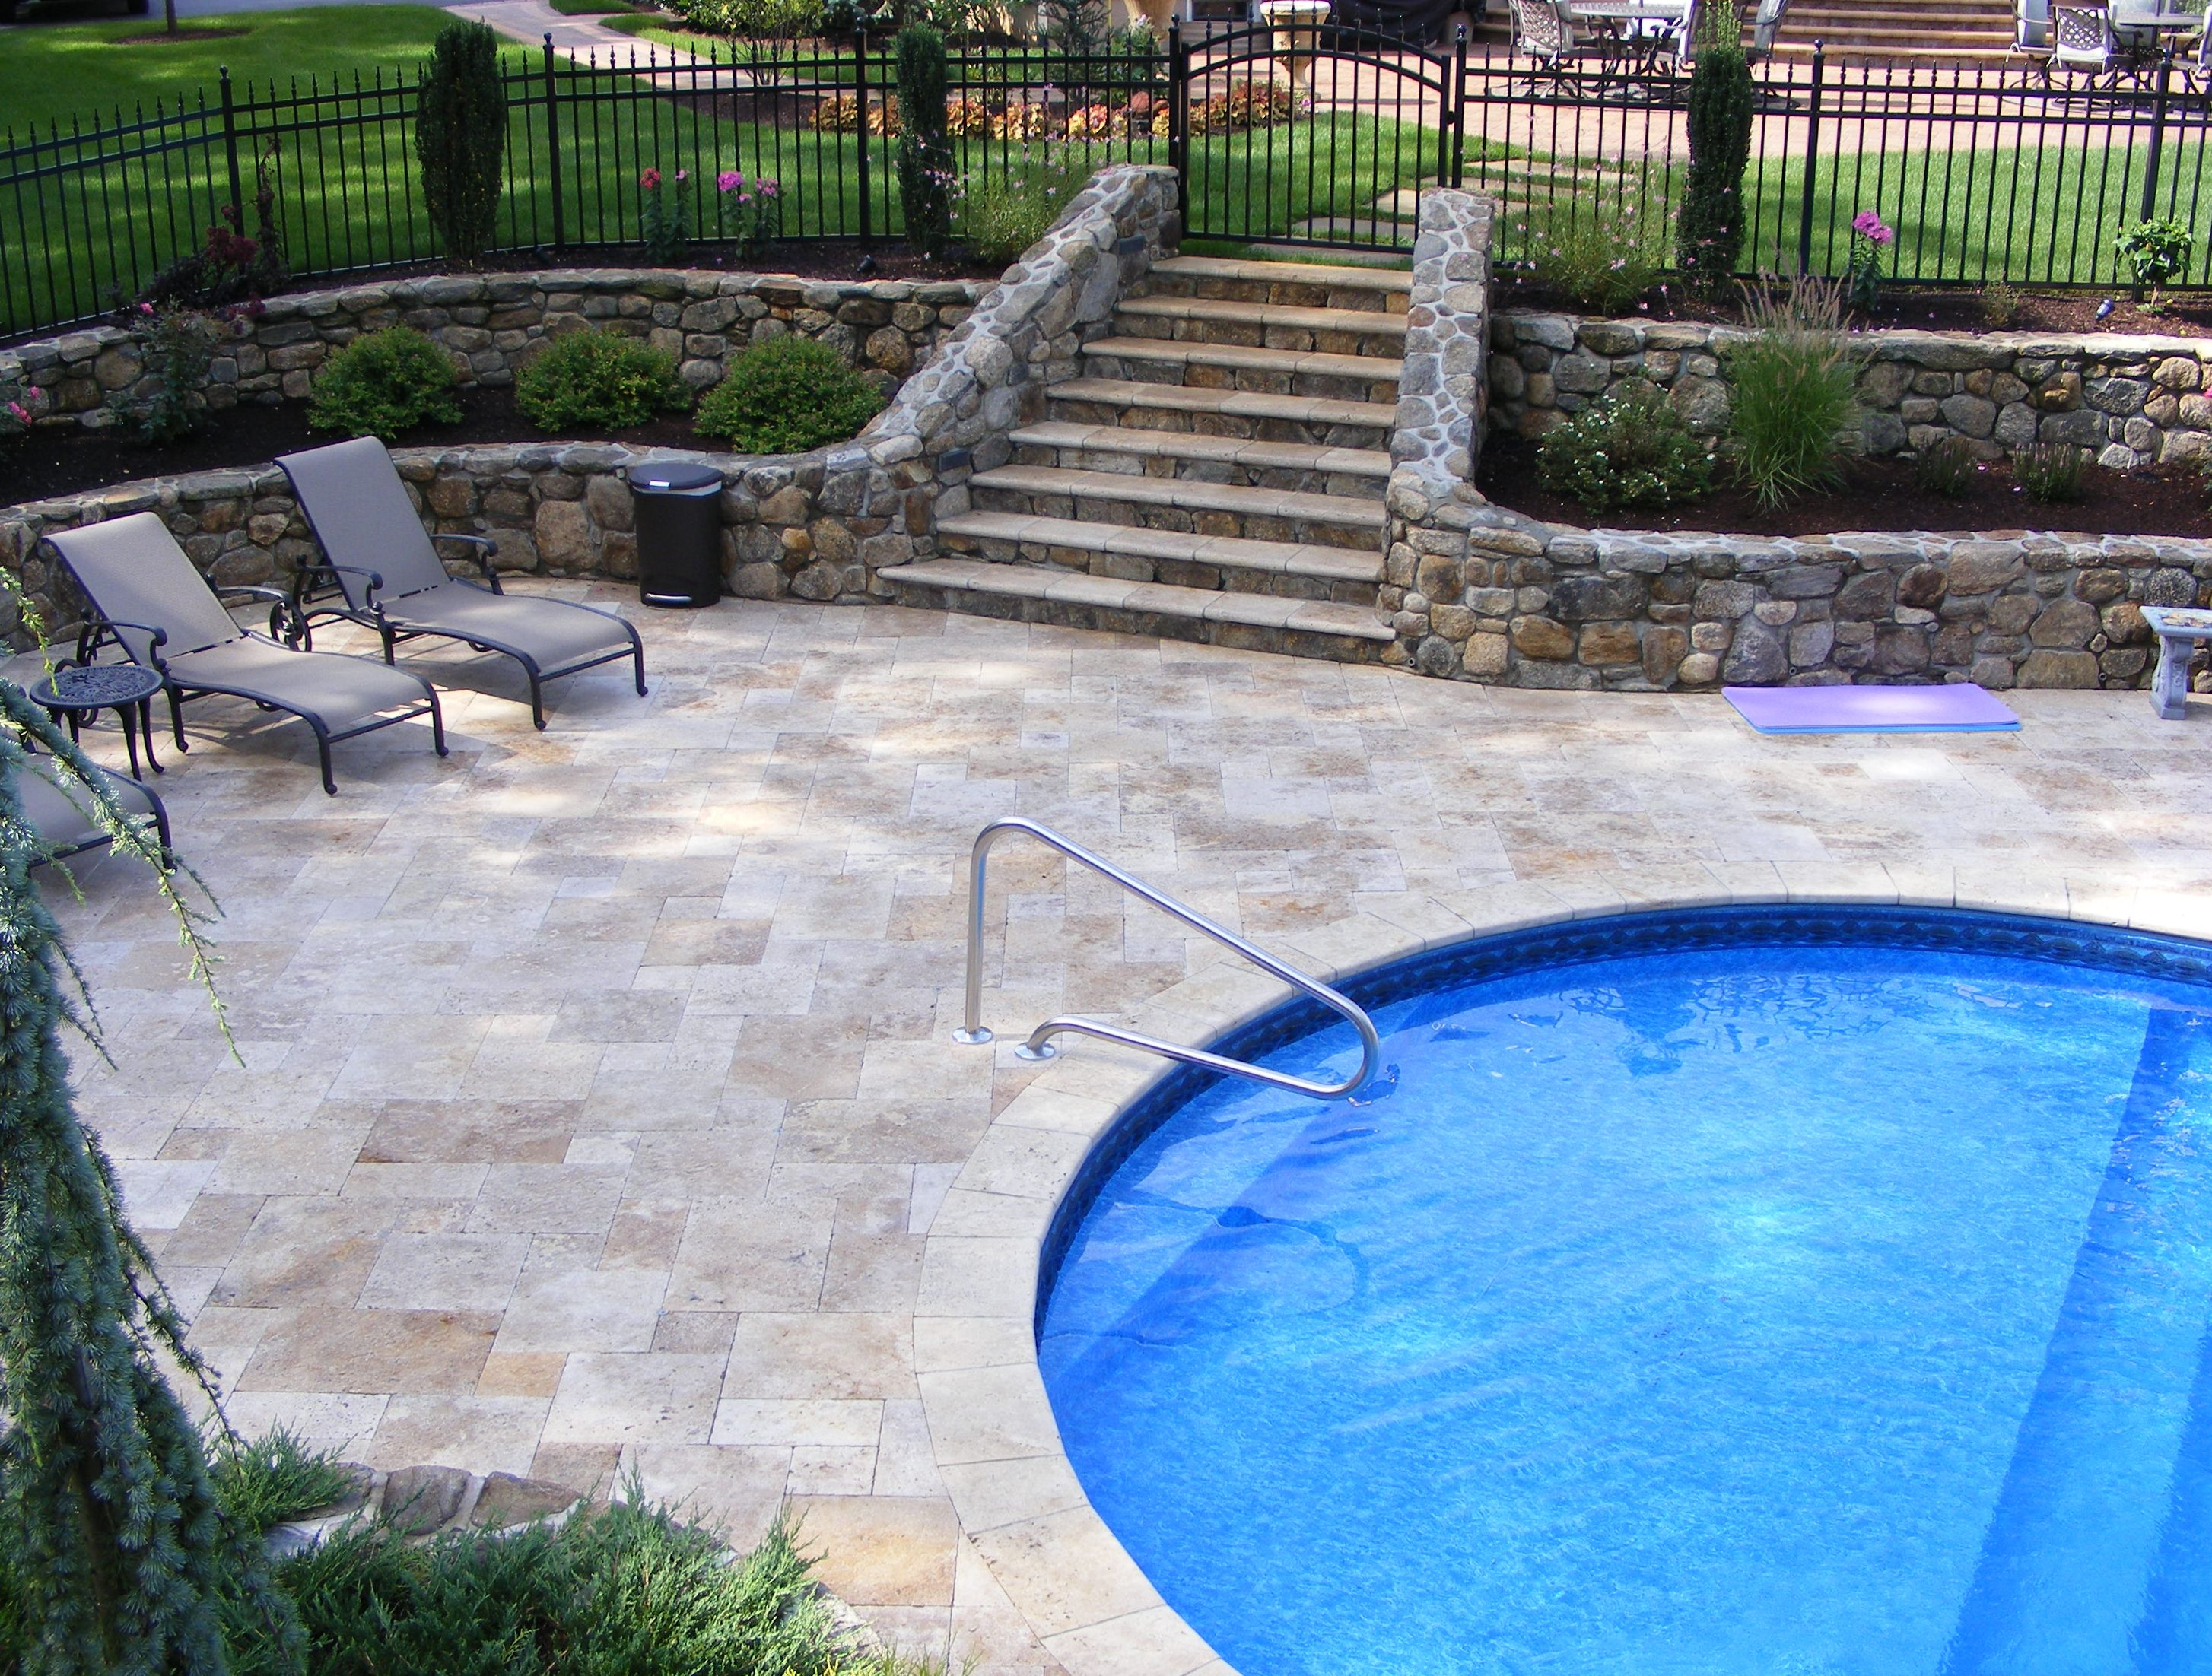 Natural Stone Pool Deck Classy Falling In Love With Travertine Pavers Pool Deck  Homesfeed